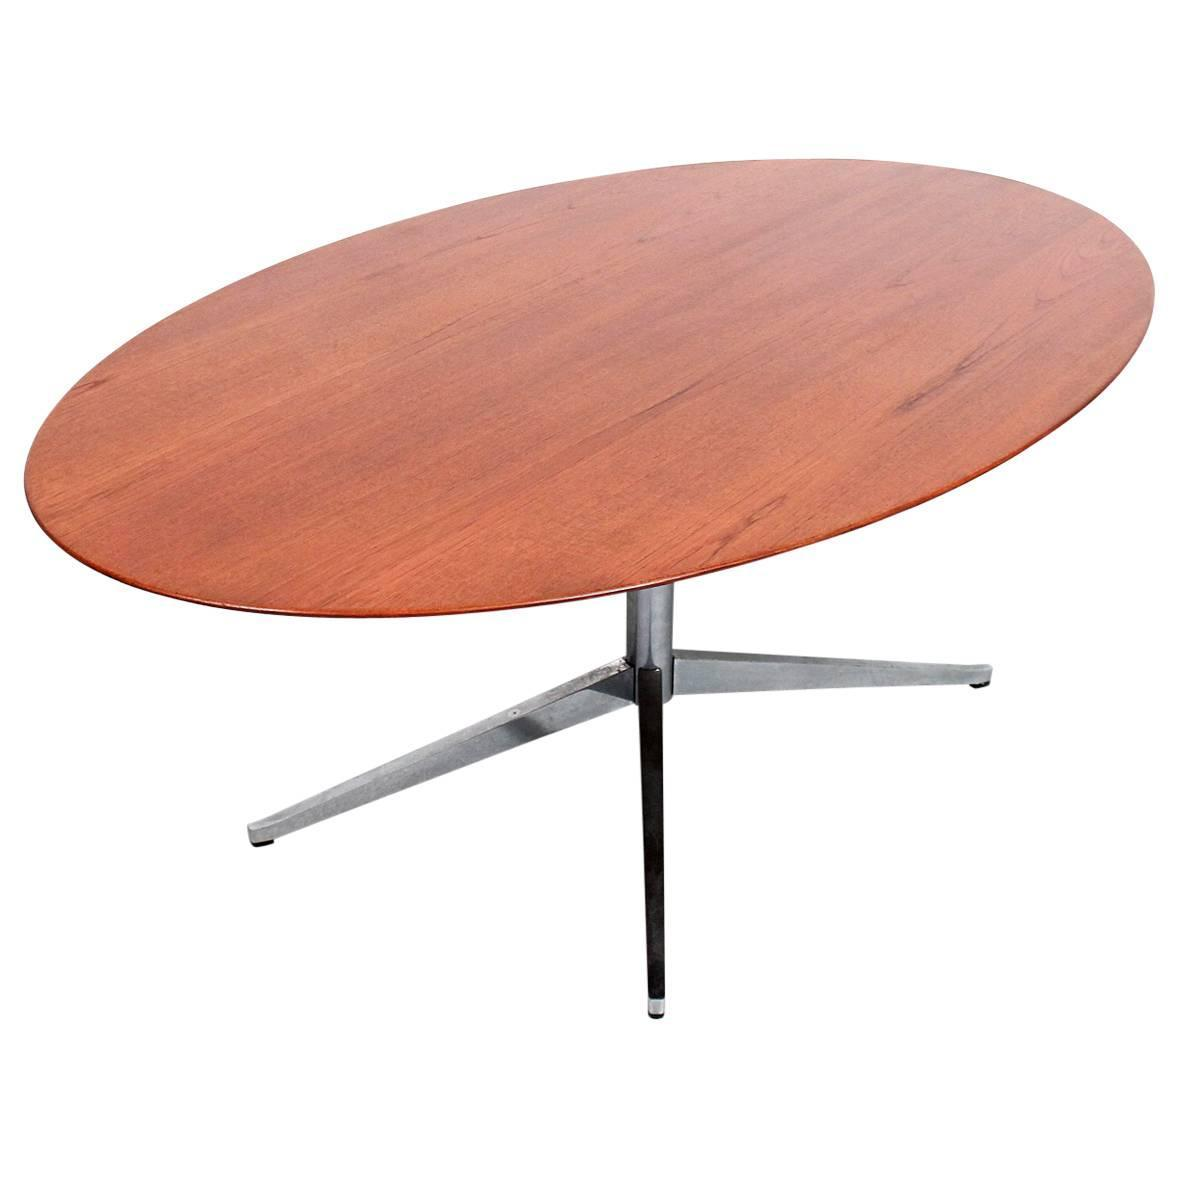 oval florence knoll teak dining table for sale at 1stdibs. Black Bedroom Furniture Sets. Home Design Ideas